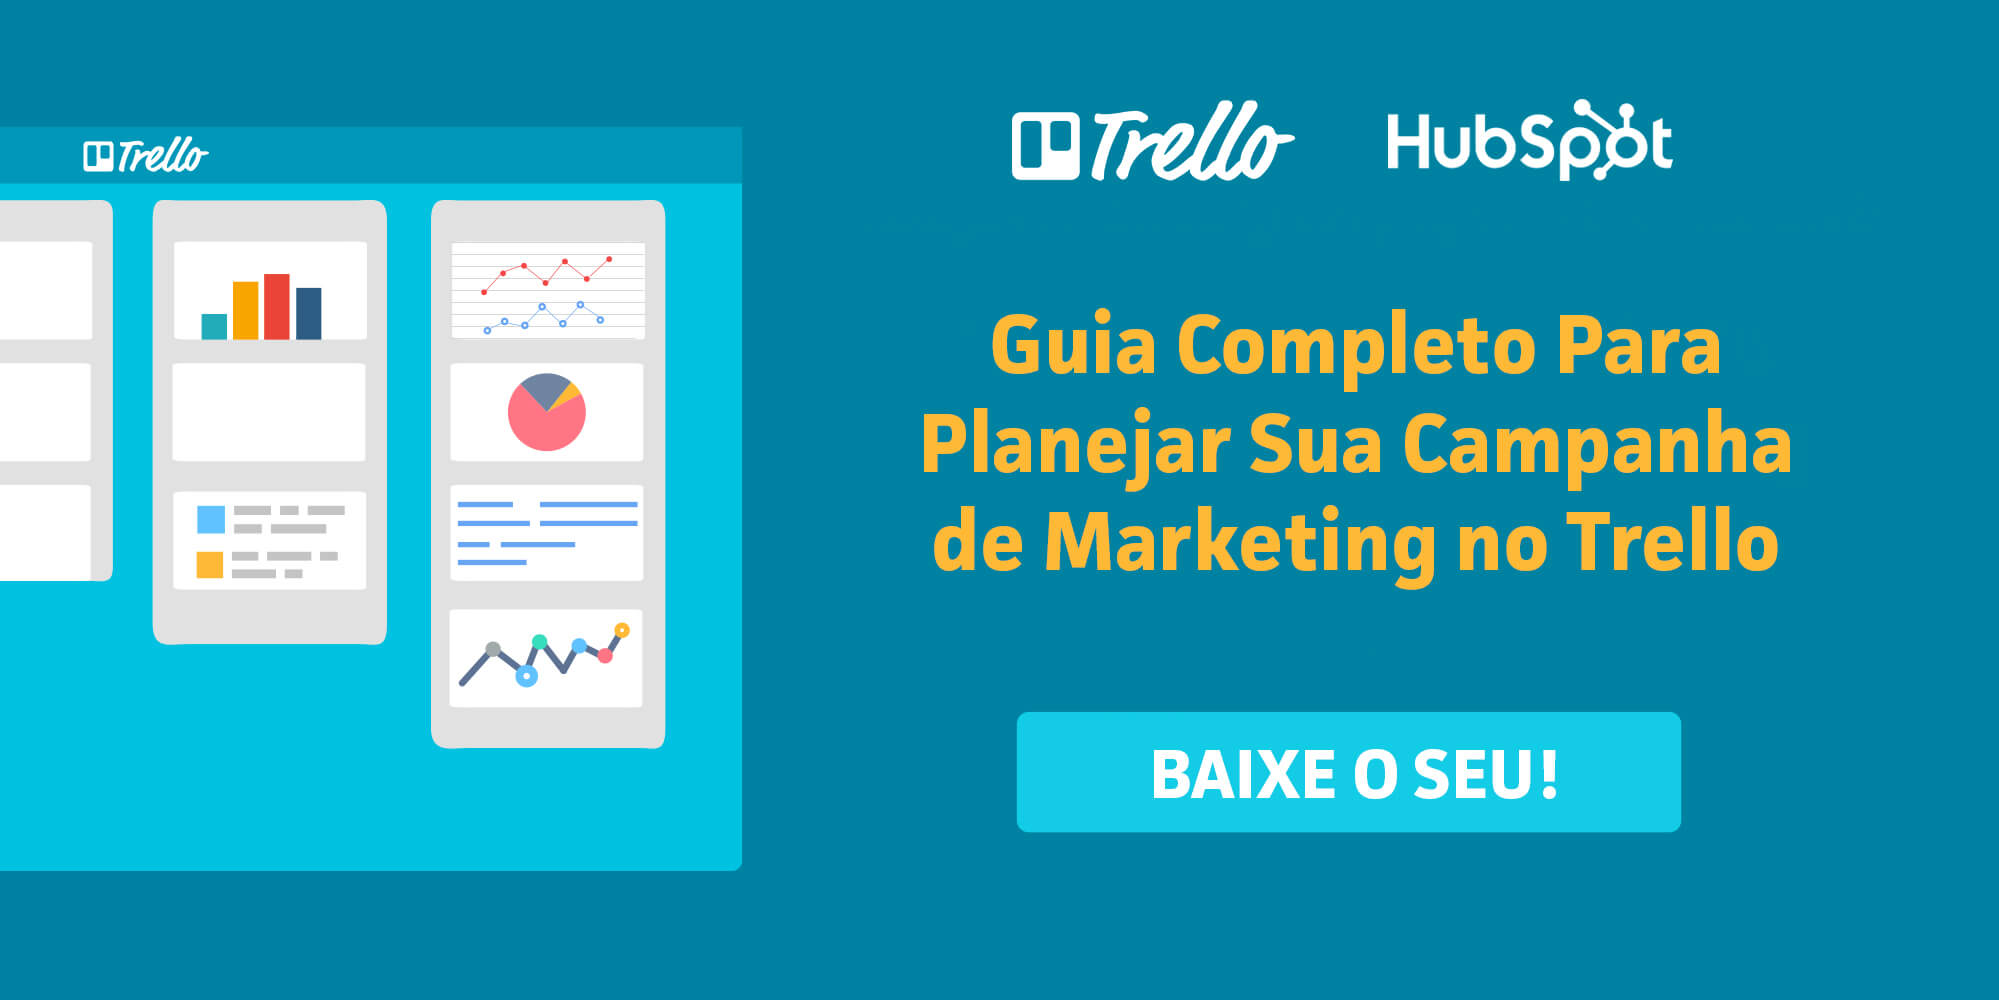 ebook-campanha-de-marketing-trello-hubspot